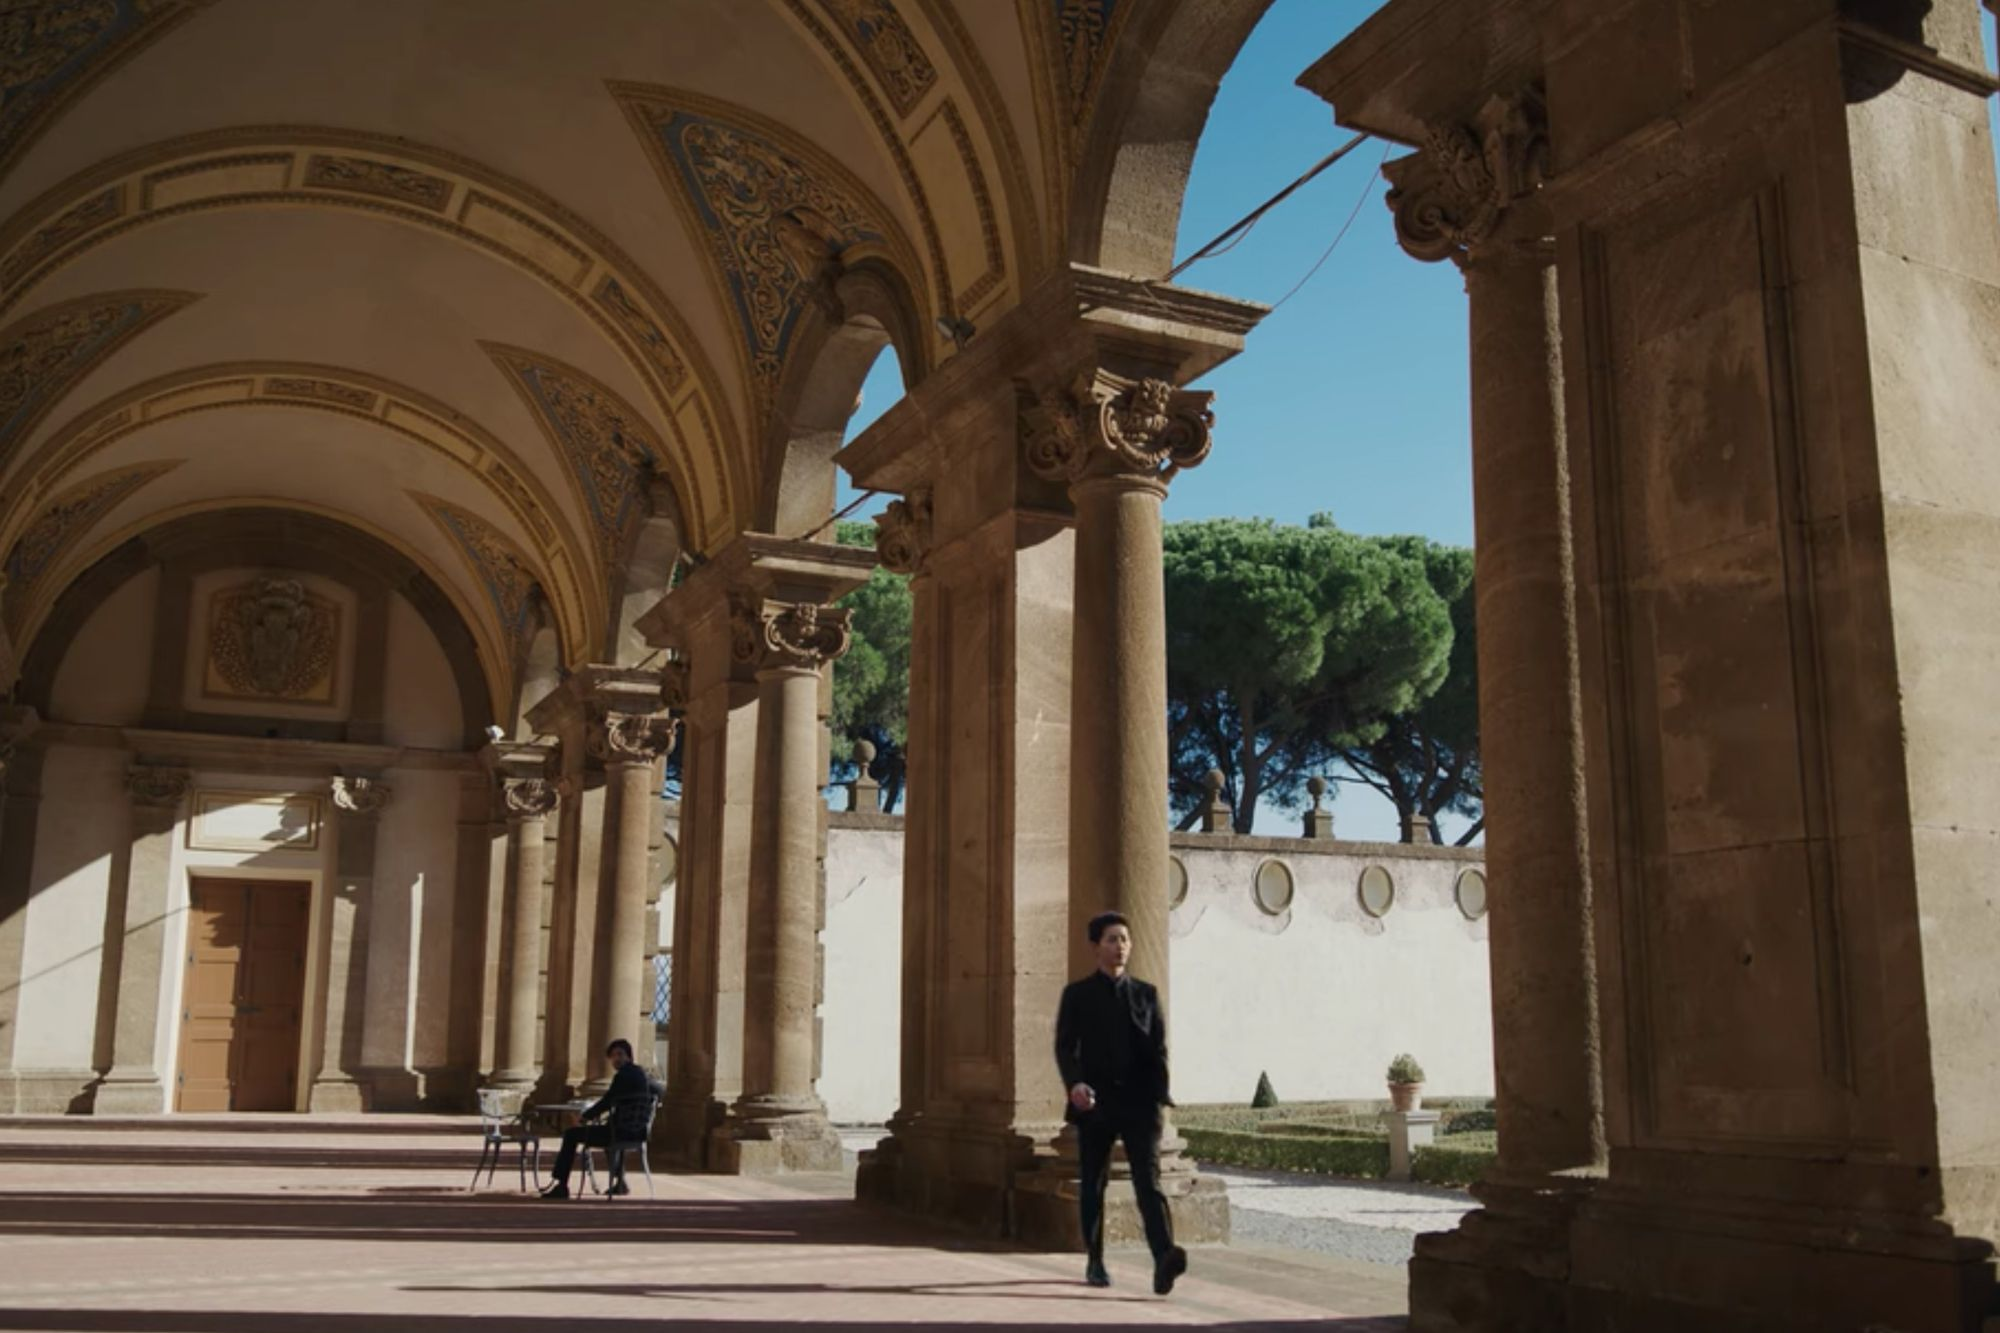 The scenes in Vincenzo featuring Italy's impressive architecture were all created using computer graphics (Image: Netflix)